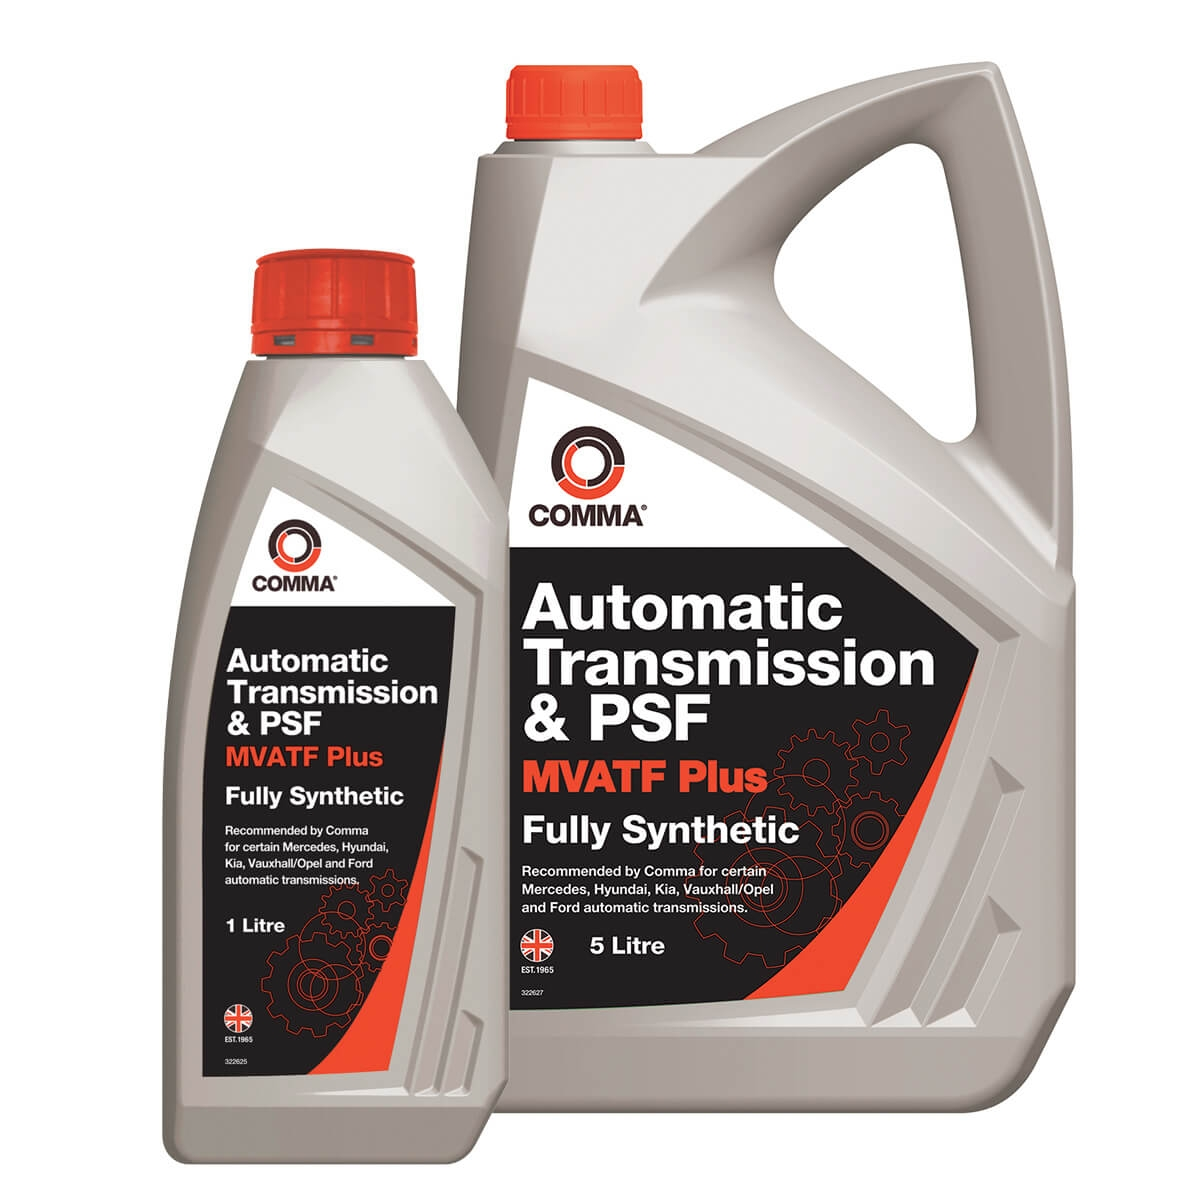 FIAT BRAVO Automatic Transmission Oil